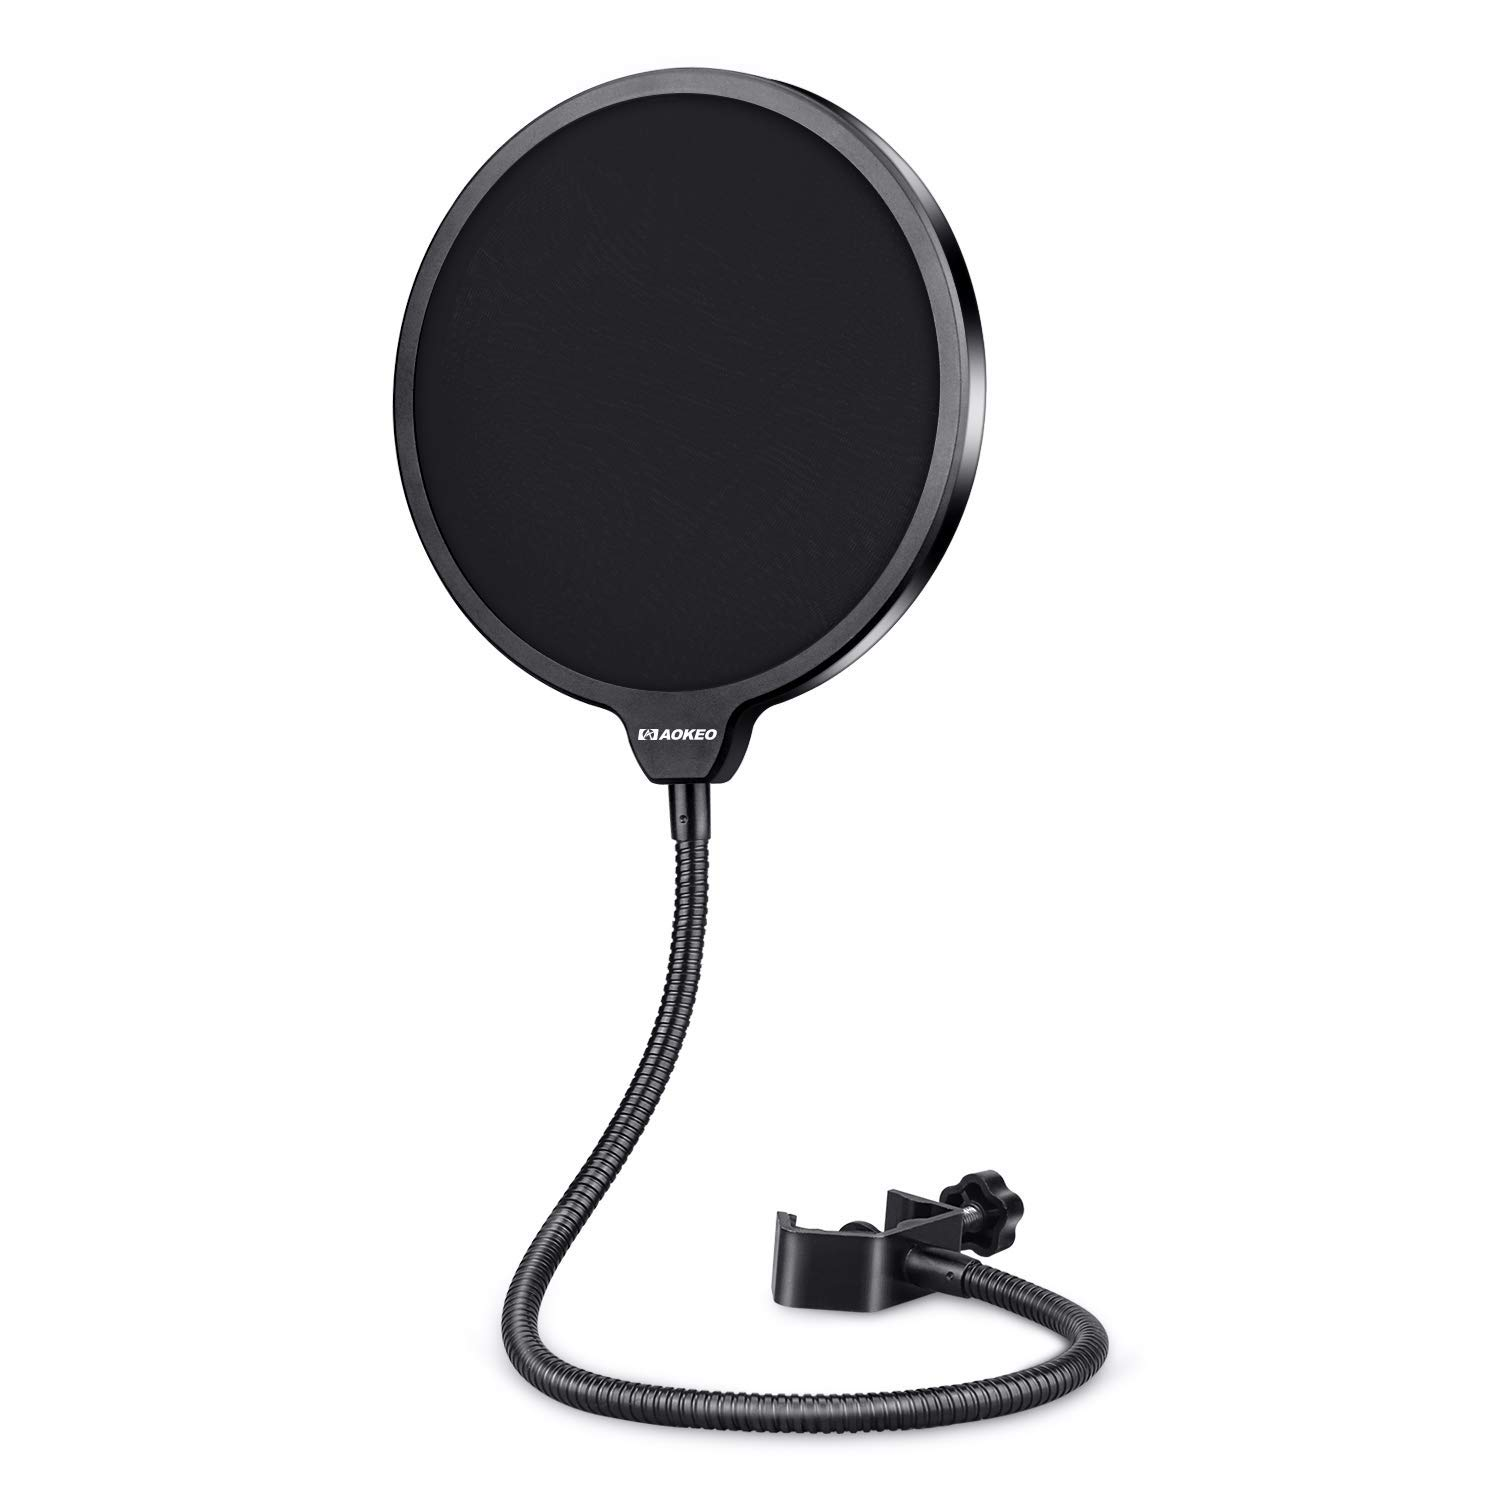 Aokeo Professional Microphone Pop Filter Mask Shield For Blue Yeti and Any Other Microphone, Dual Layered Wind Pop Screen With A Flexible 360° Gooseneck Clip Stabilizing Arm